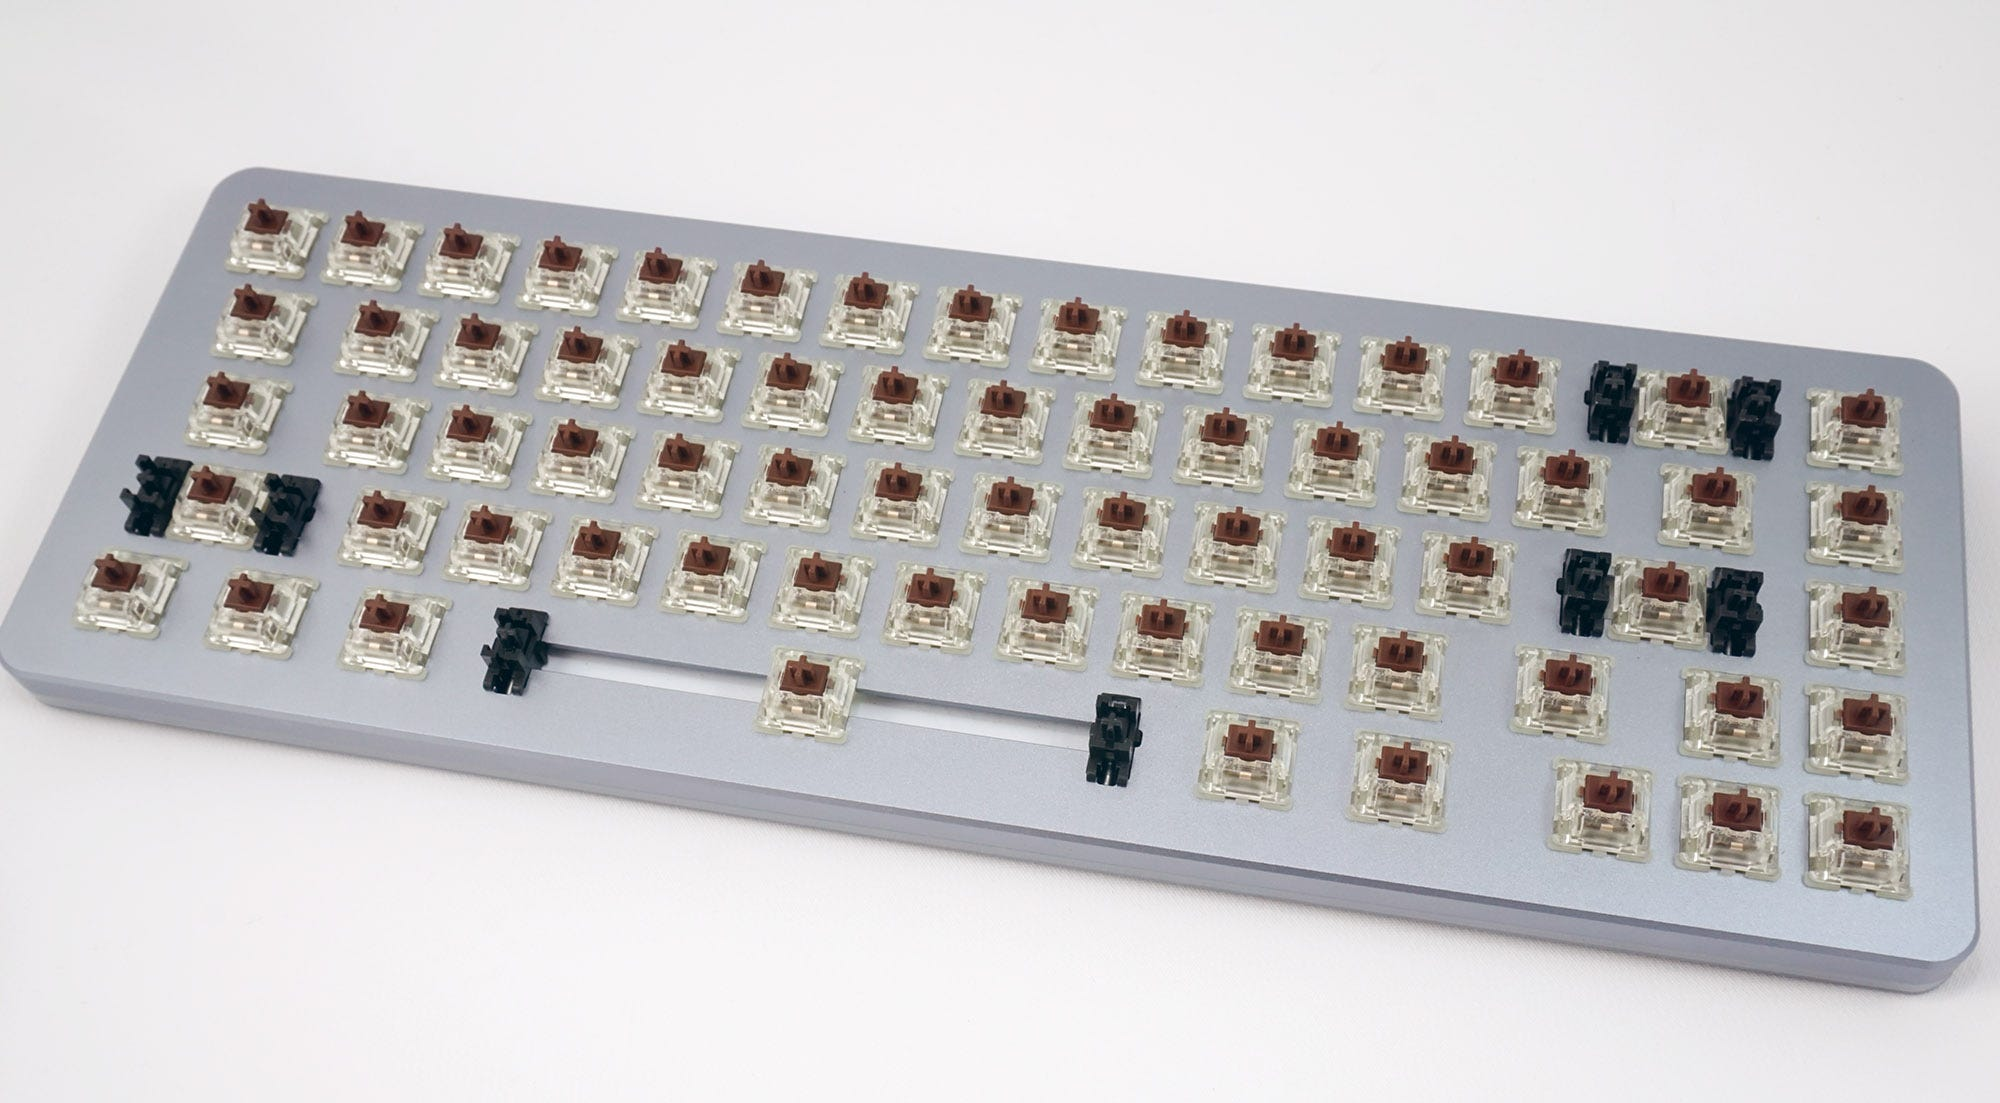 The ALT with keycaps removed and default MX Brown switches in place.